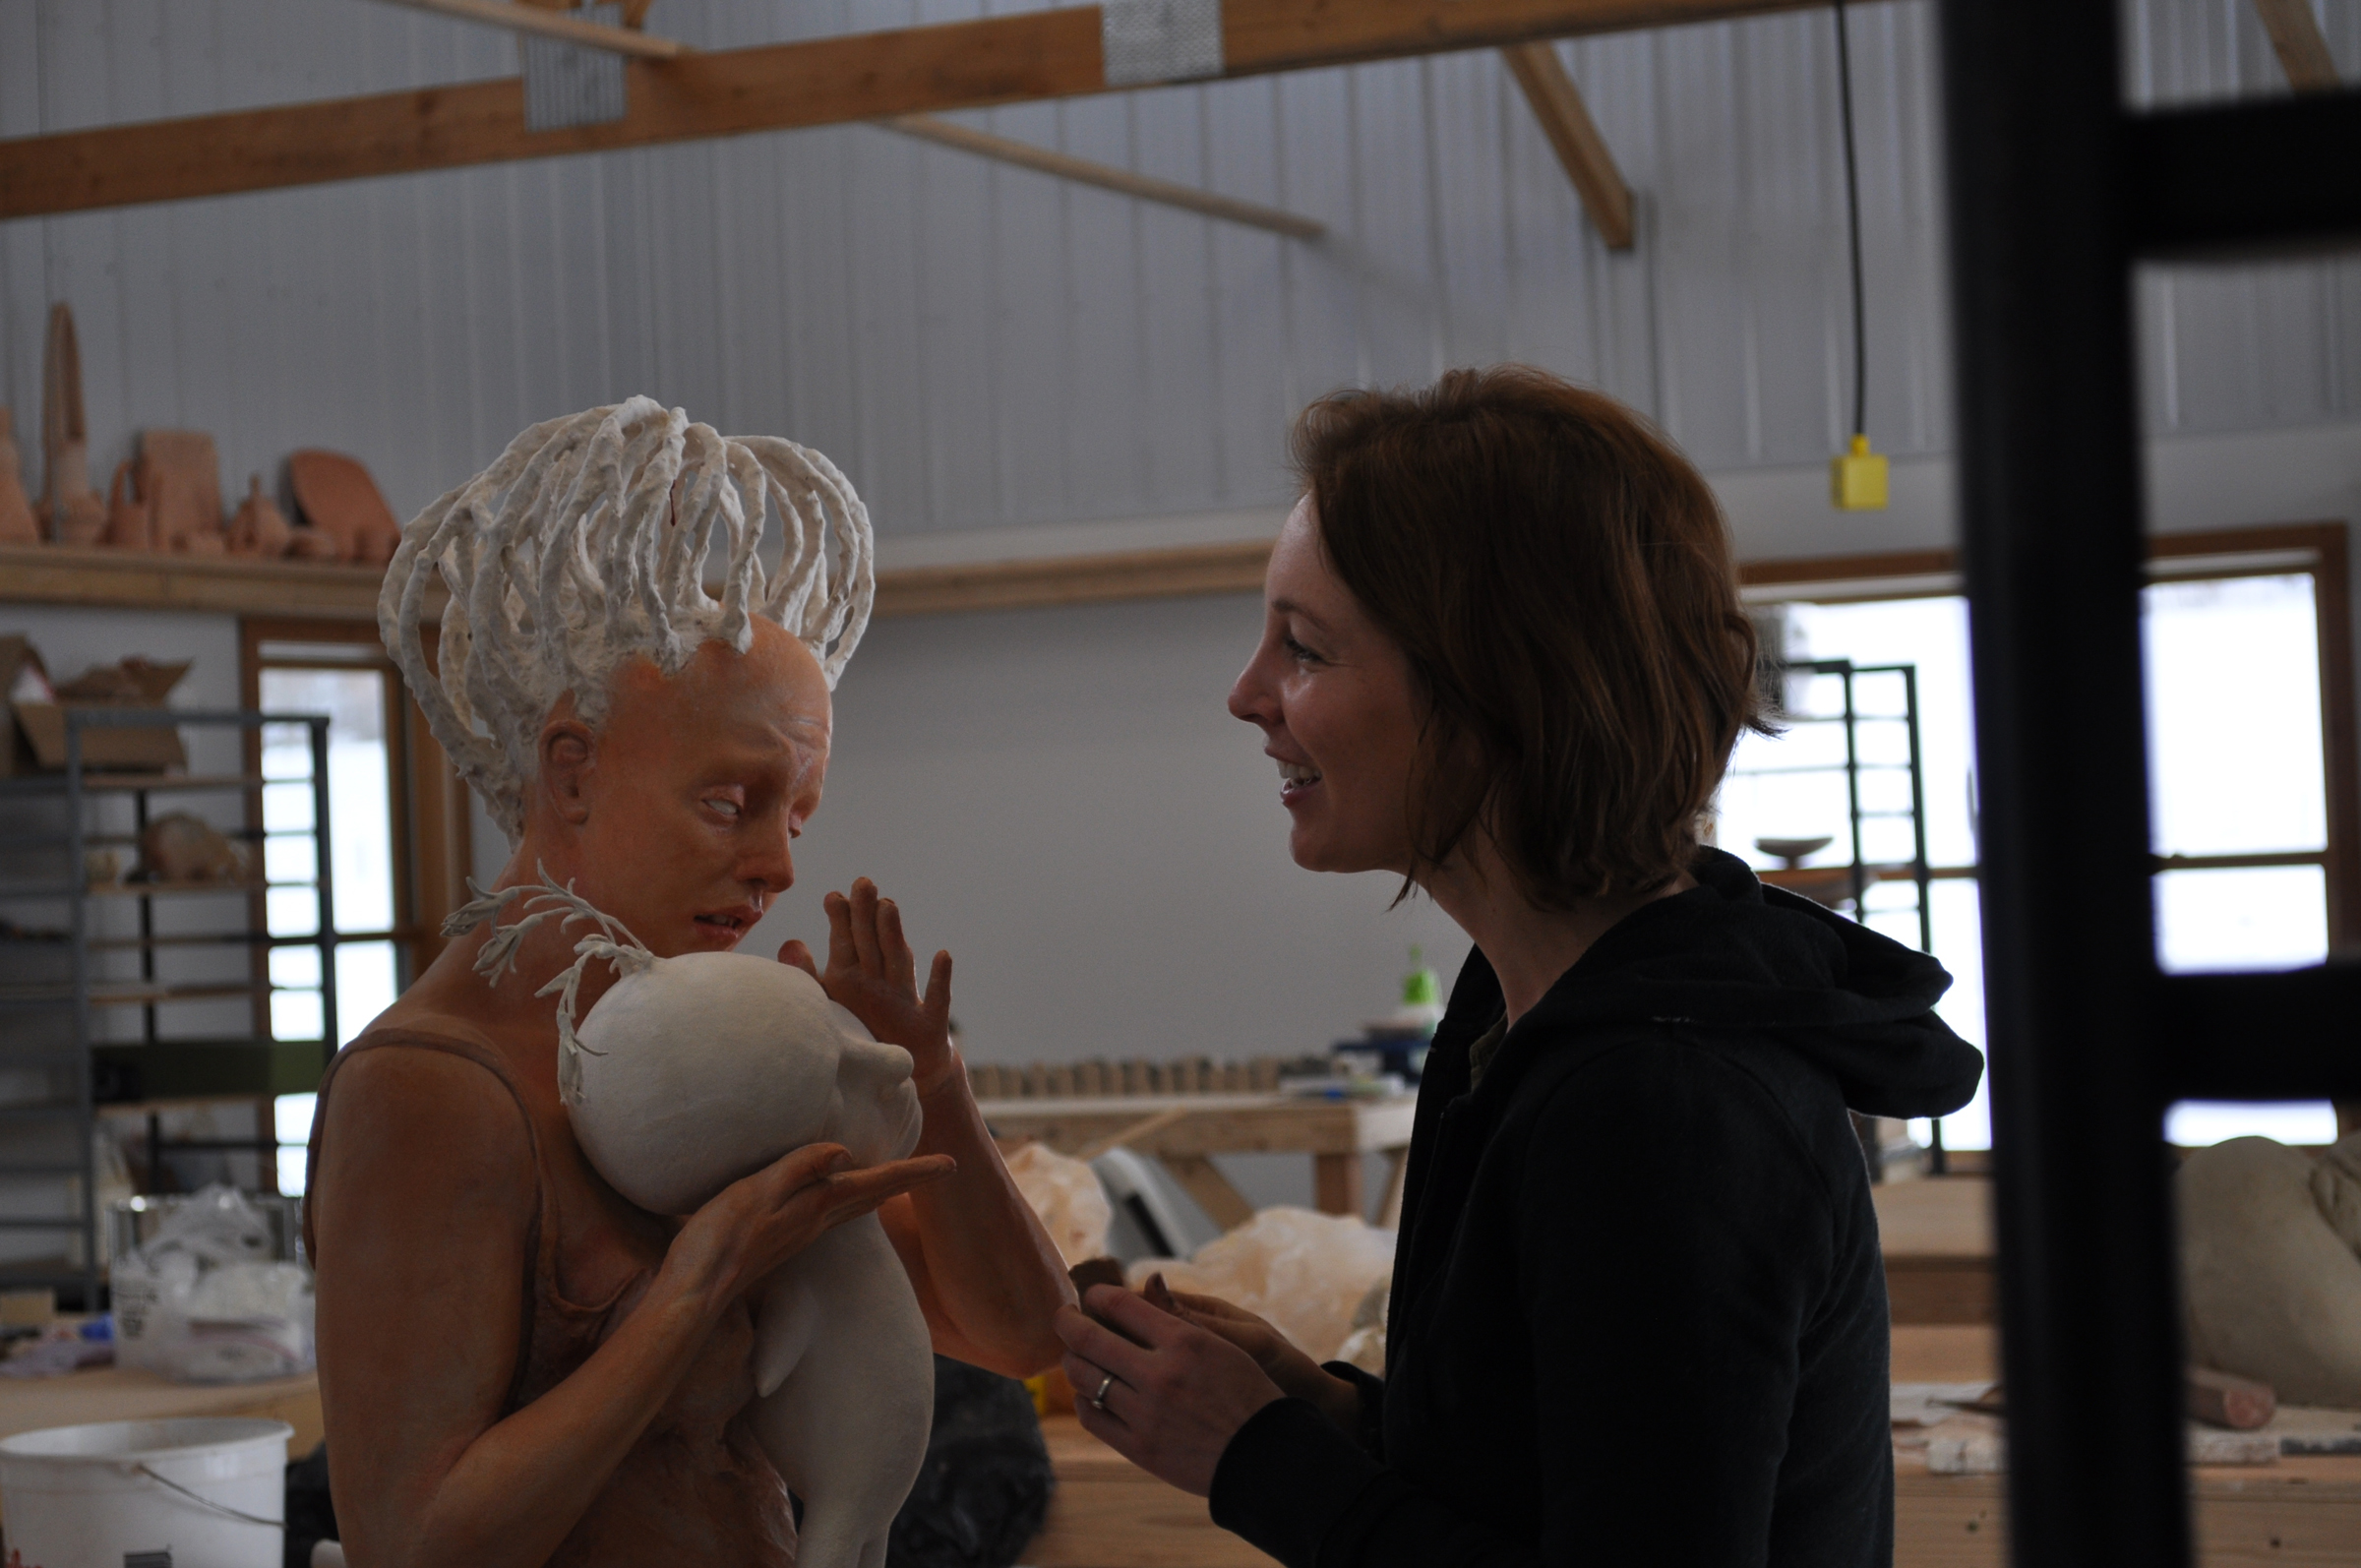 Working in my studio at Red lodge